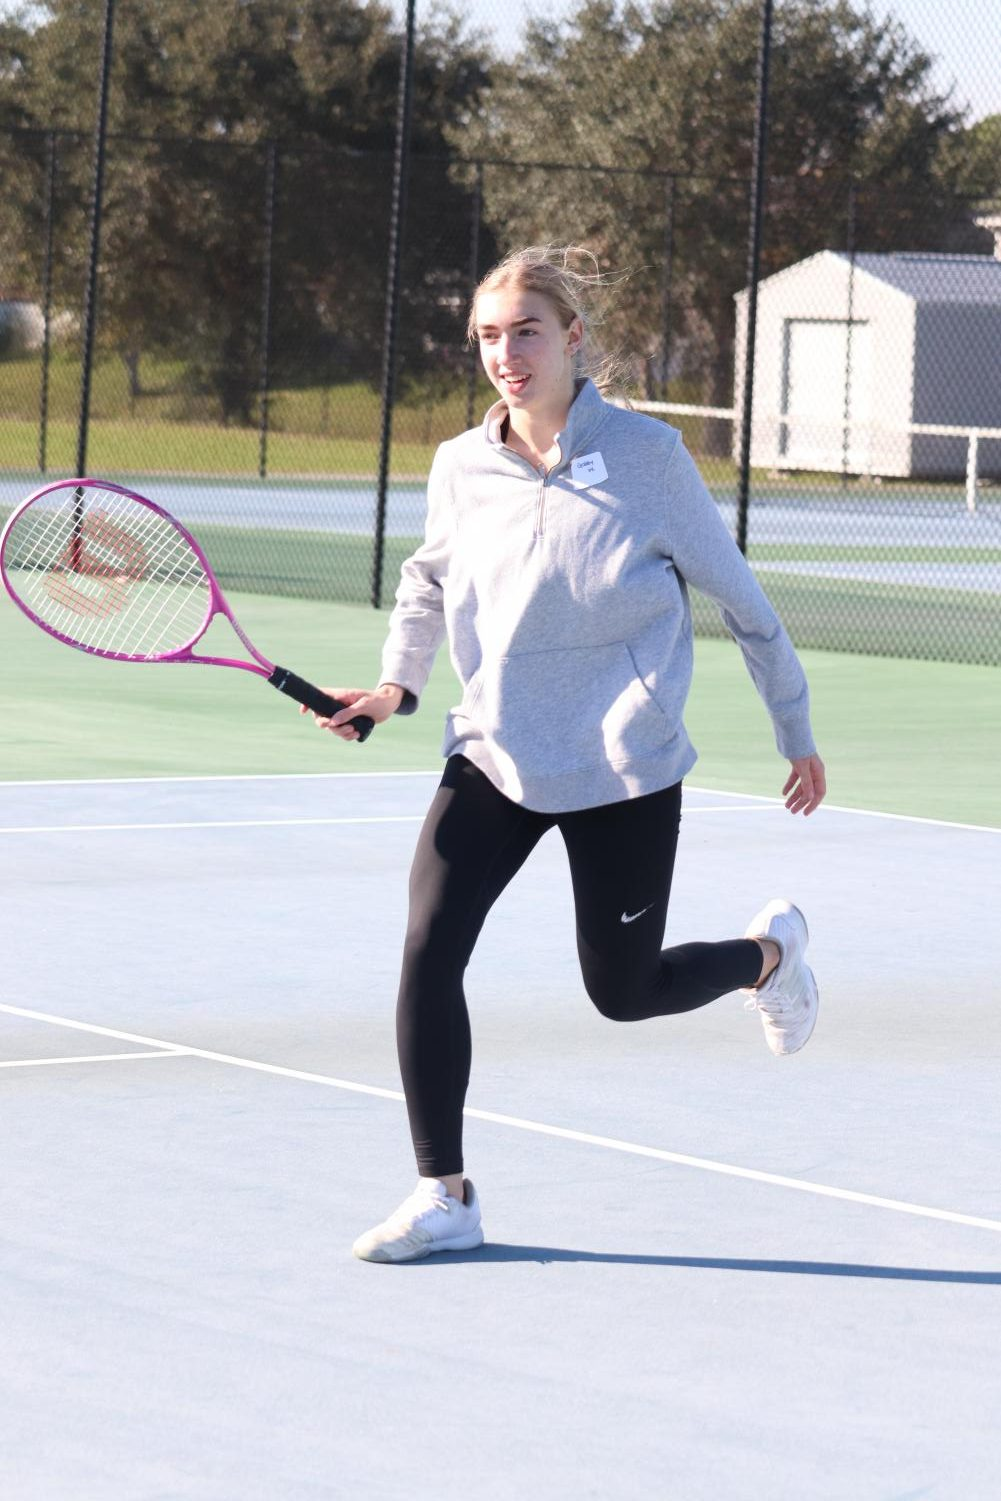 Even on the coldest day of the year, (Jan.21) Sophomore Gaby Witherwite is still able to go outside and play tennis.